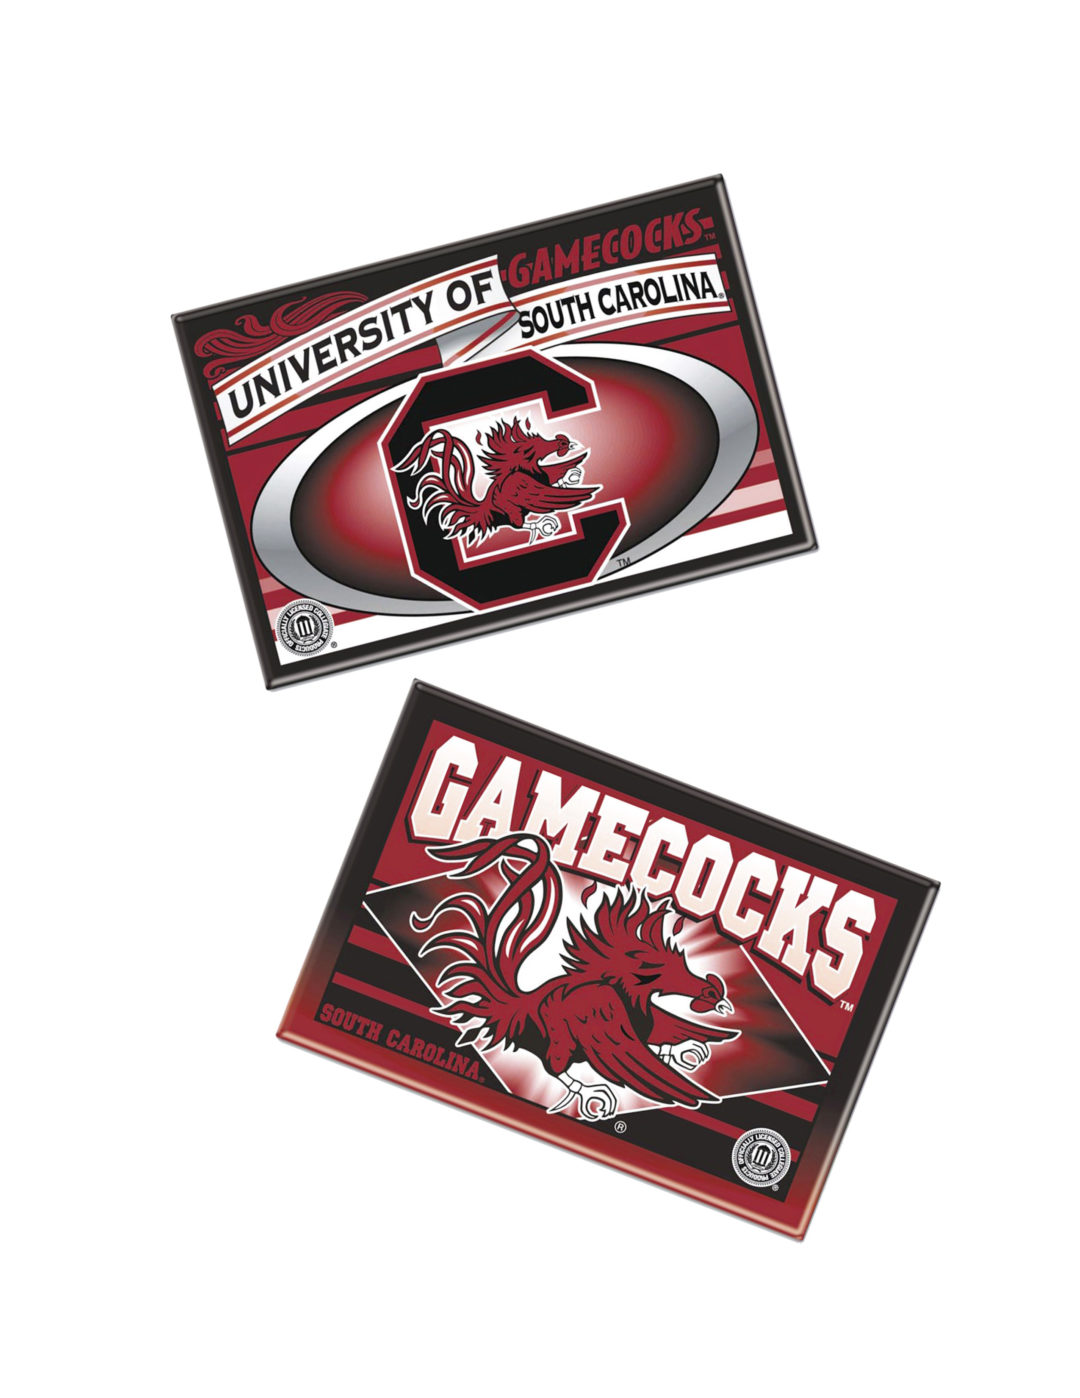 USC South Carolina Gamecocks metal magnet 2 pack Barefoot Campus Outfitter